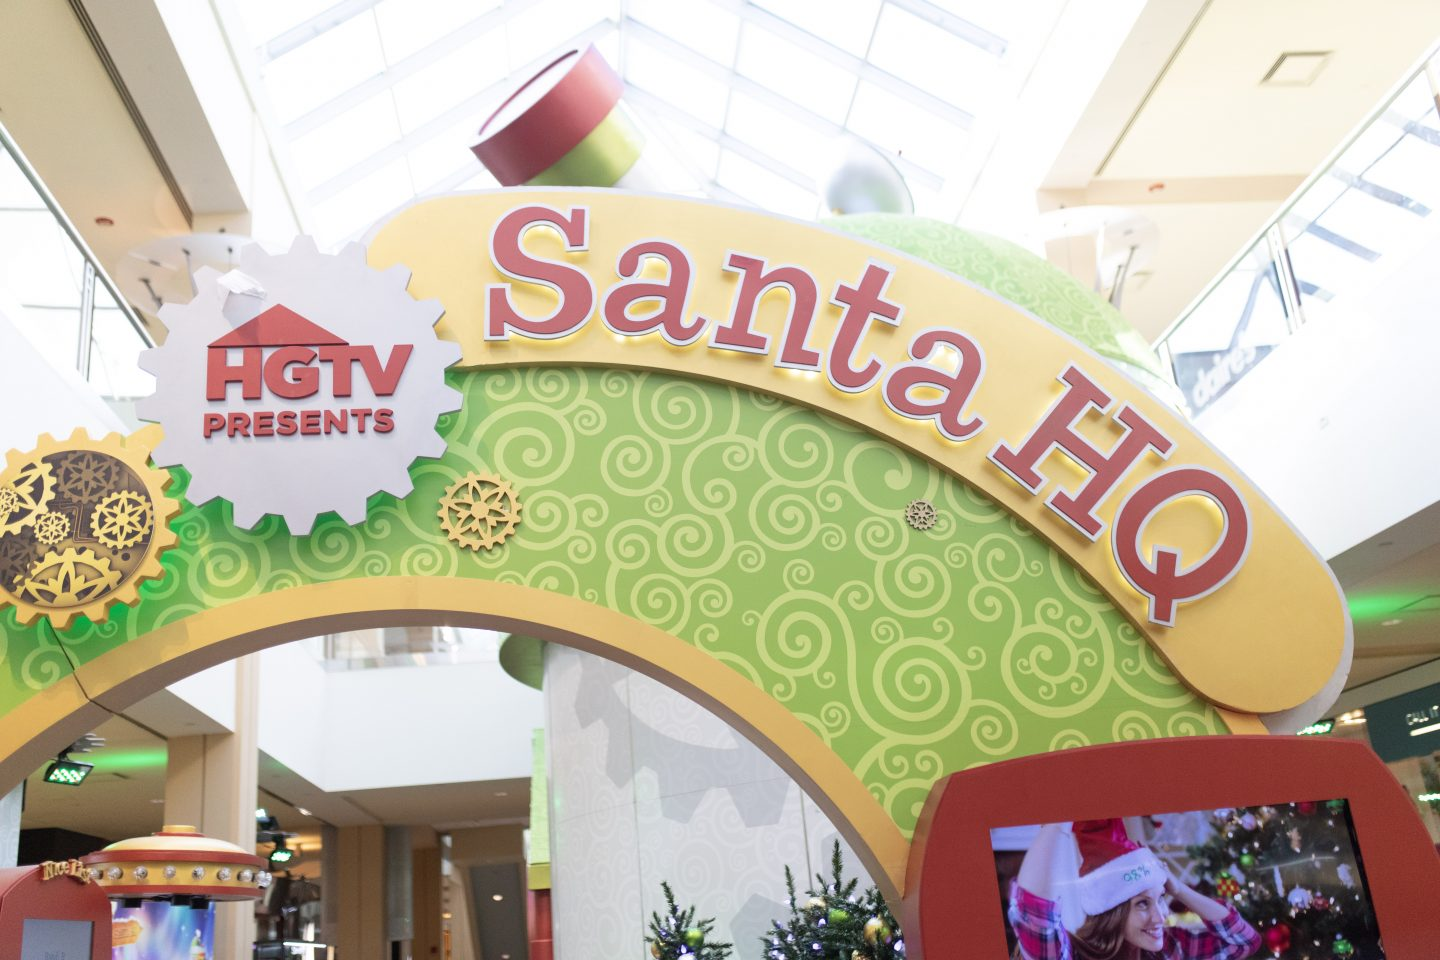 Our experience at HGTV Santa HQ at Queens Center Mall